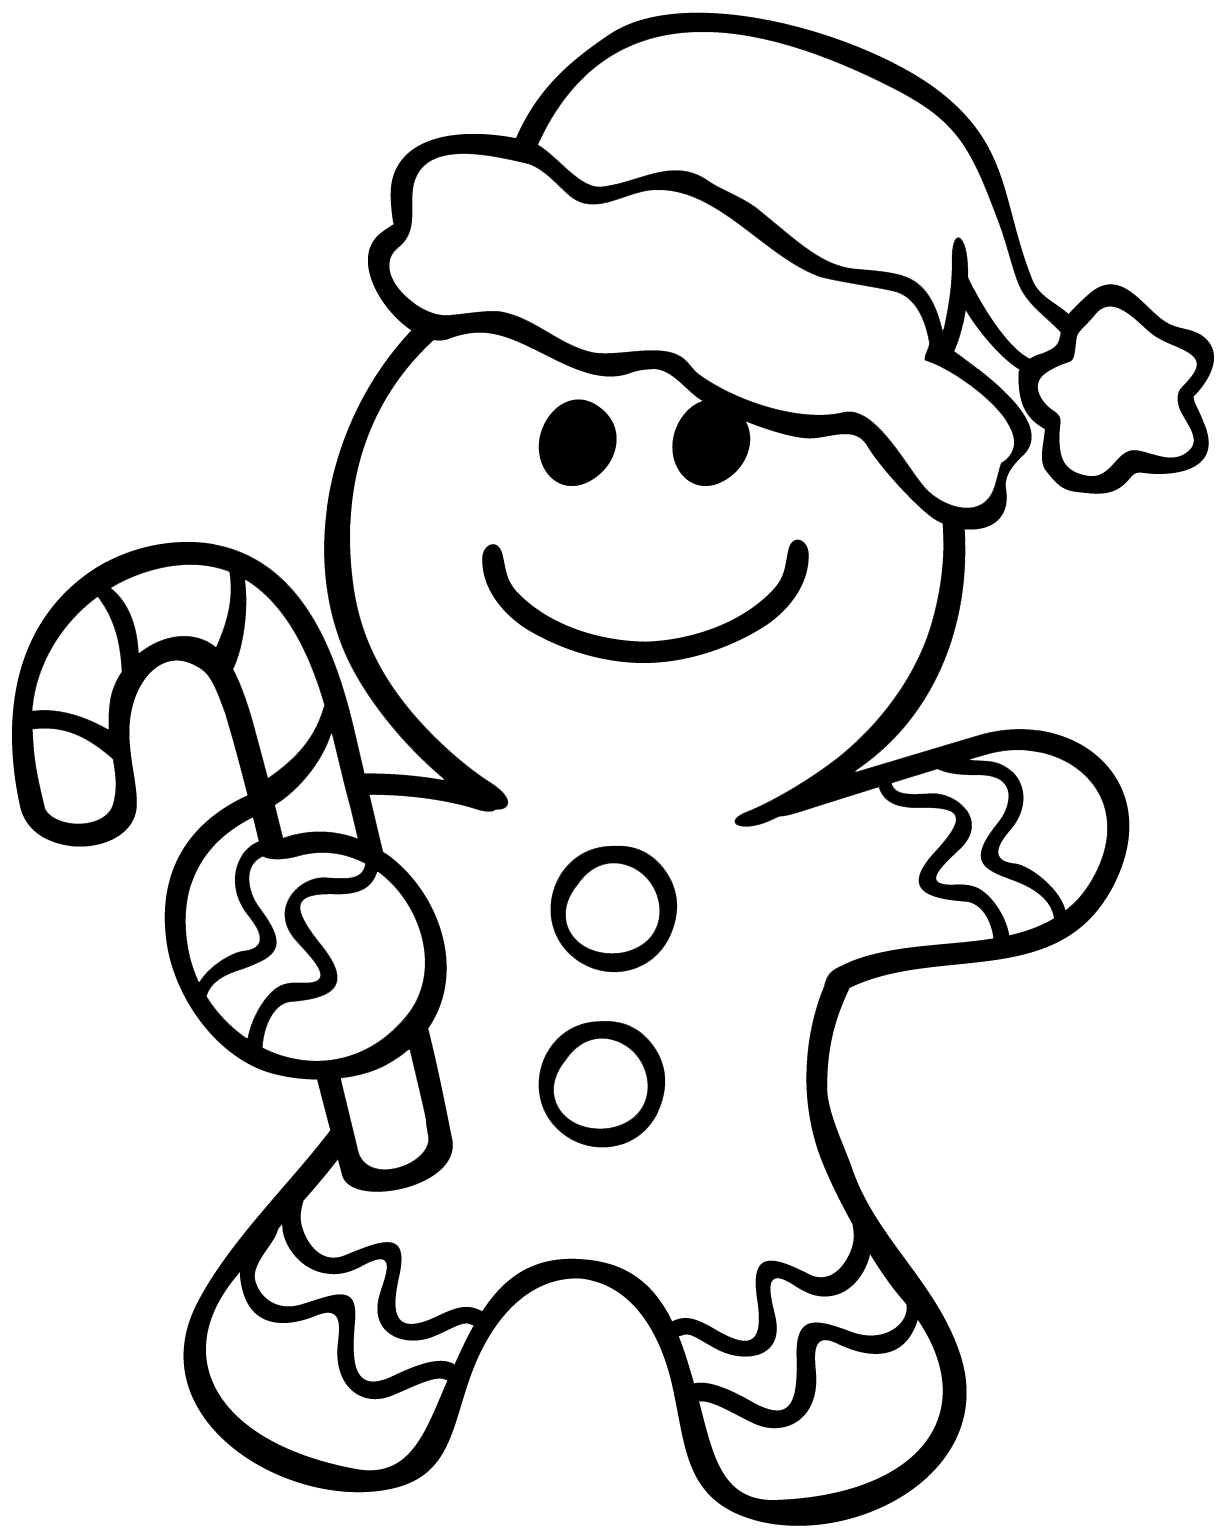 gingerbread color christmas gingerbread man coloring page free printable gingerbread color